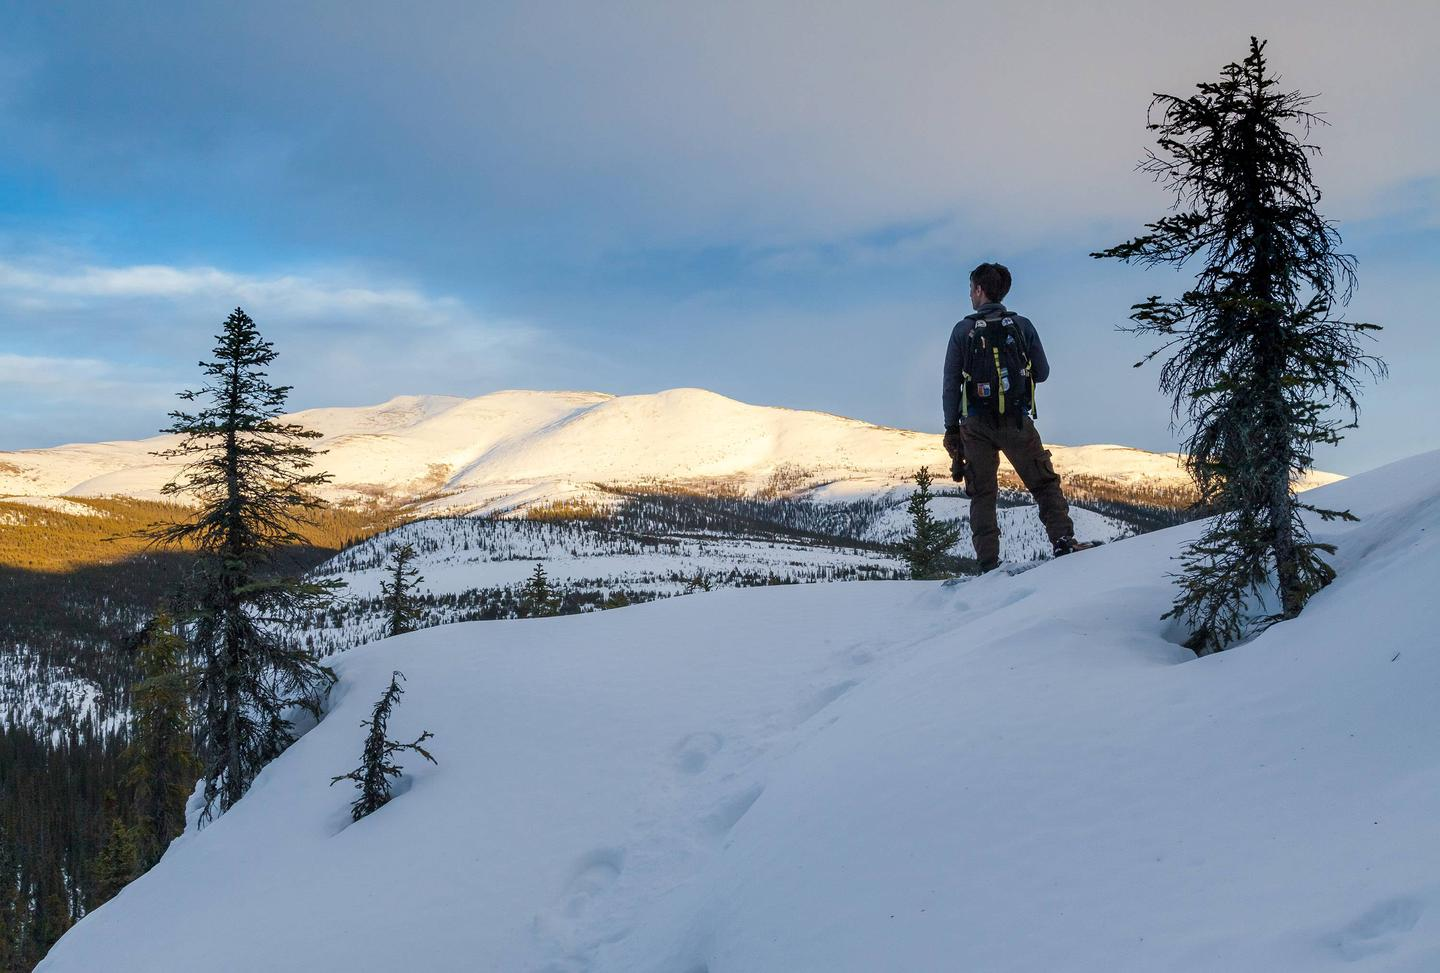 A man enjoys a view of a distant mountain.A snowshoer enjoys an evening view of the Fossil Creek drainage near Windy Gap in the White Mountains National Recreation Area.